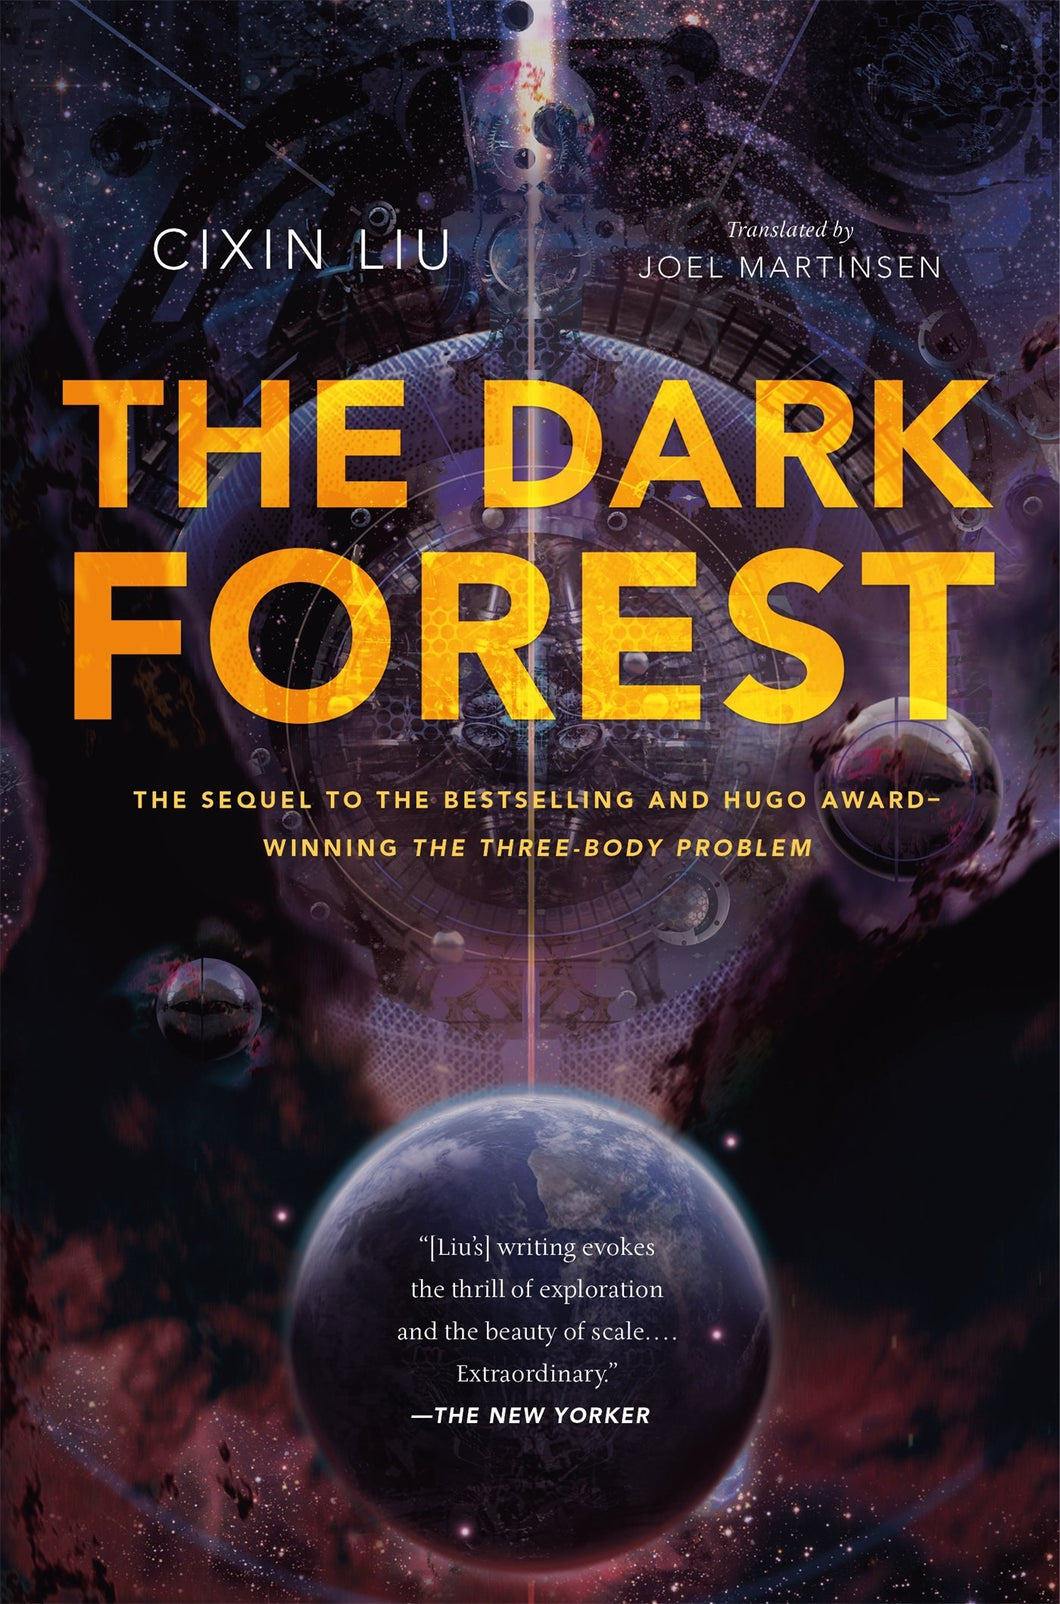 The Dark Forest by Cixin Liu - eBook, ePub, Mobi, PDF (Fast instant delivery)